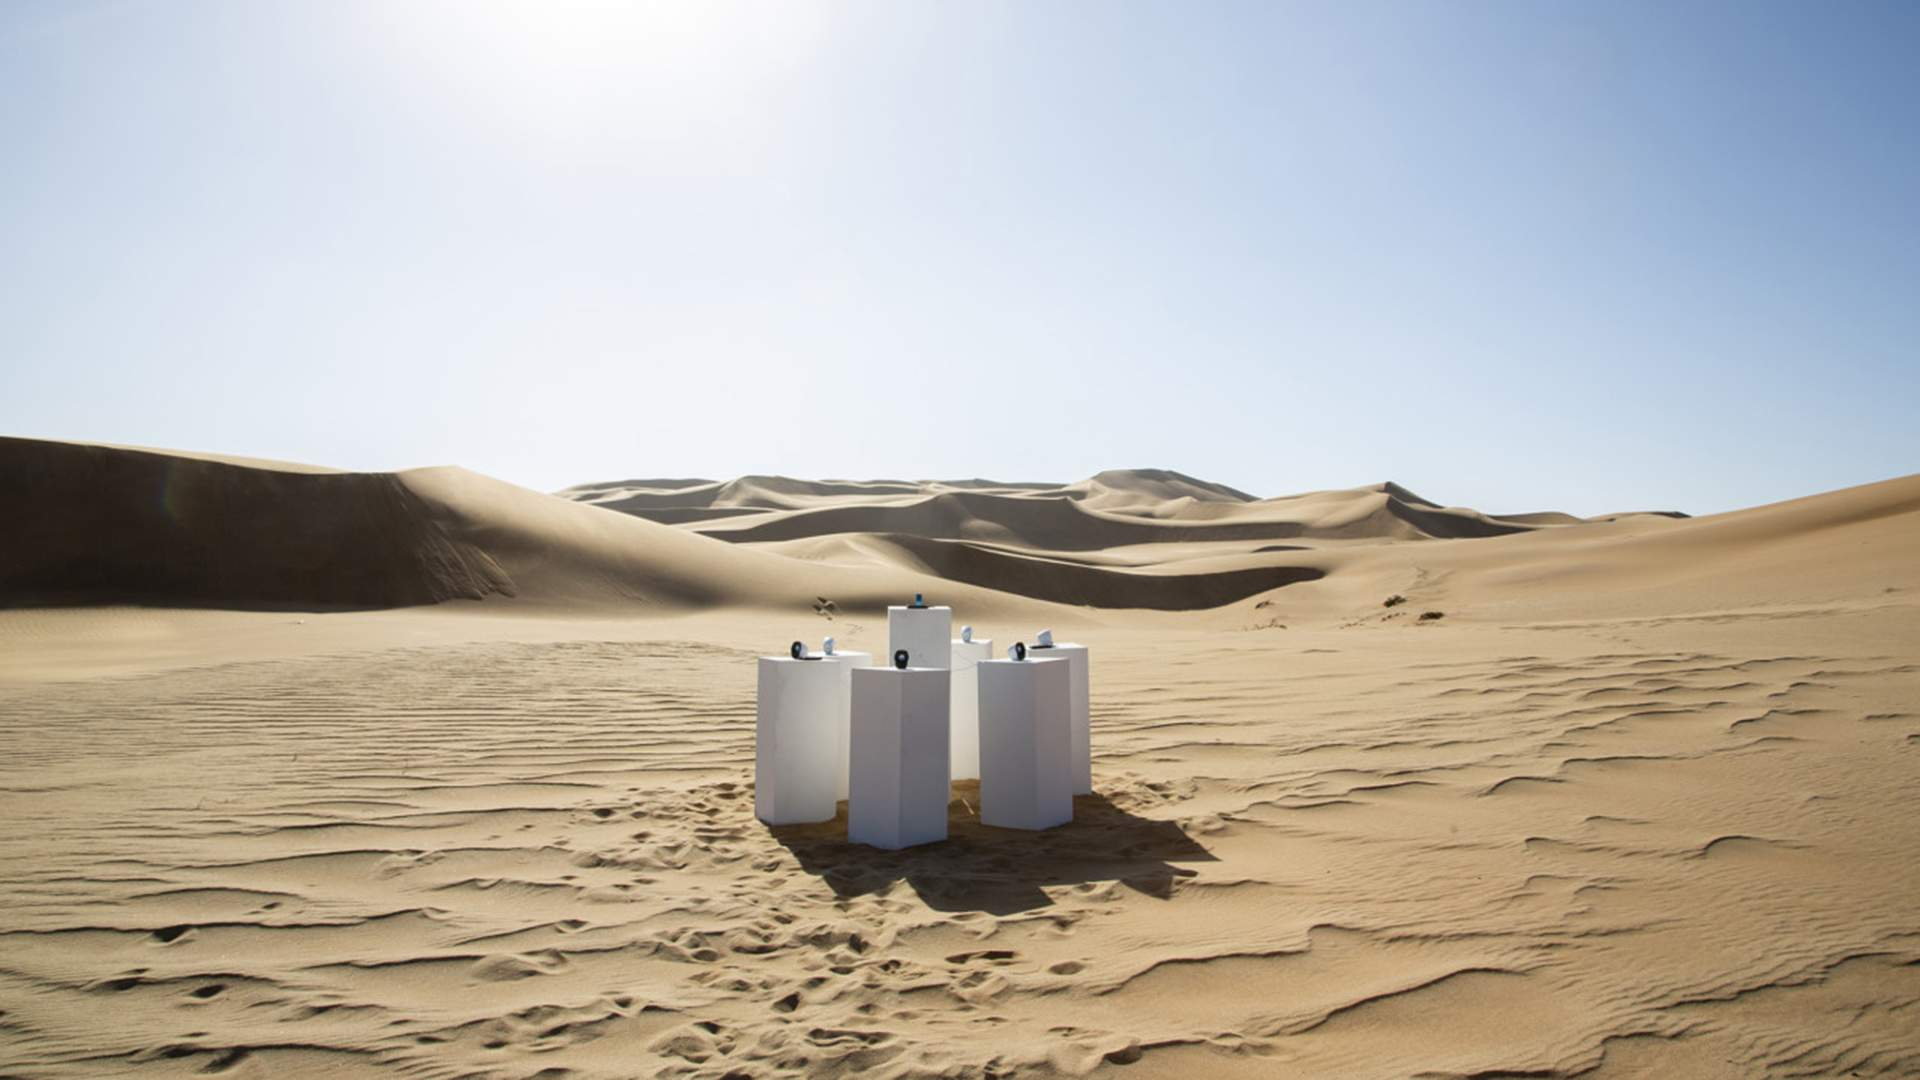 This New Art Installation Is Playing Toto's 'Africa' Non-Stop in the African Desert